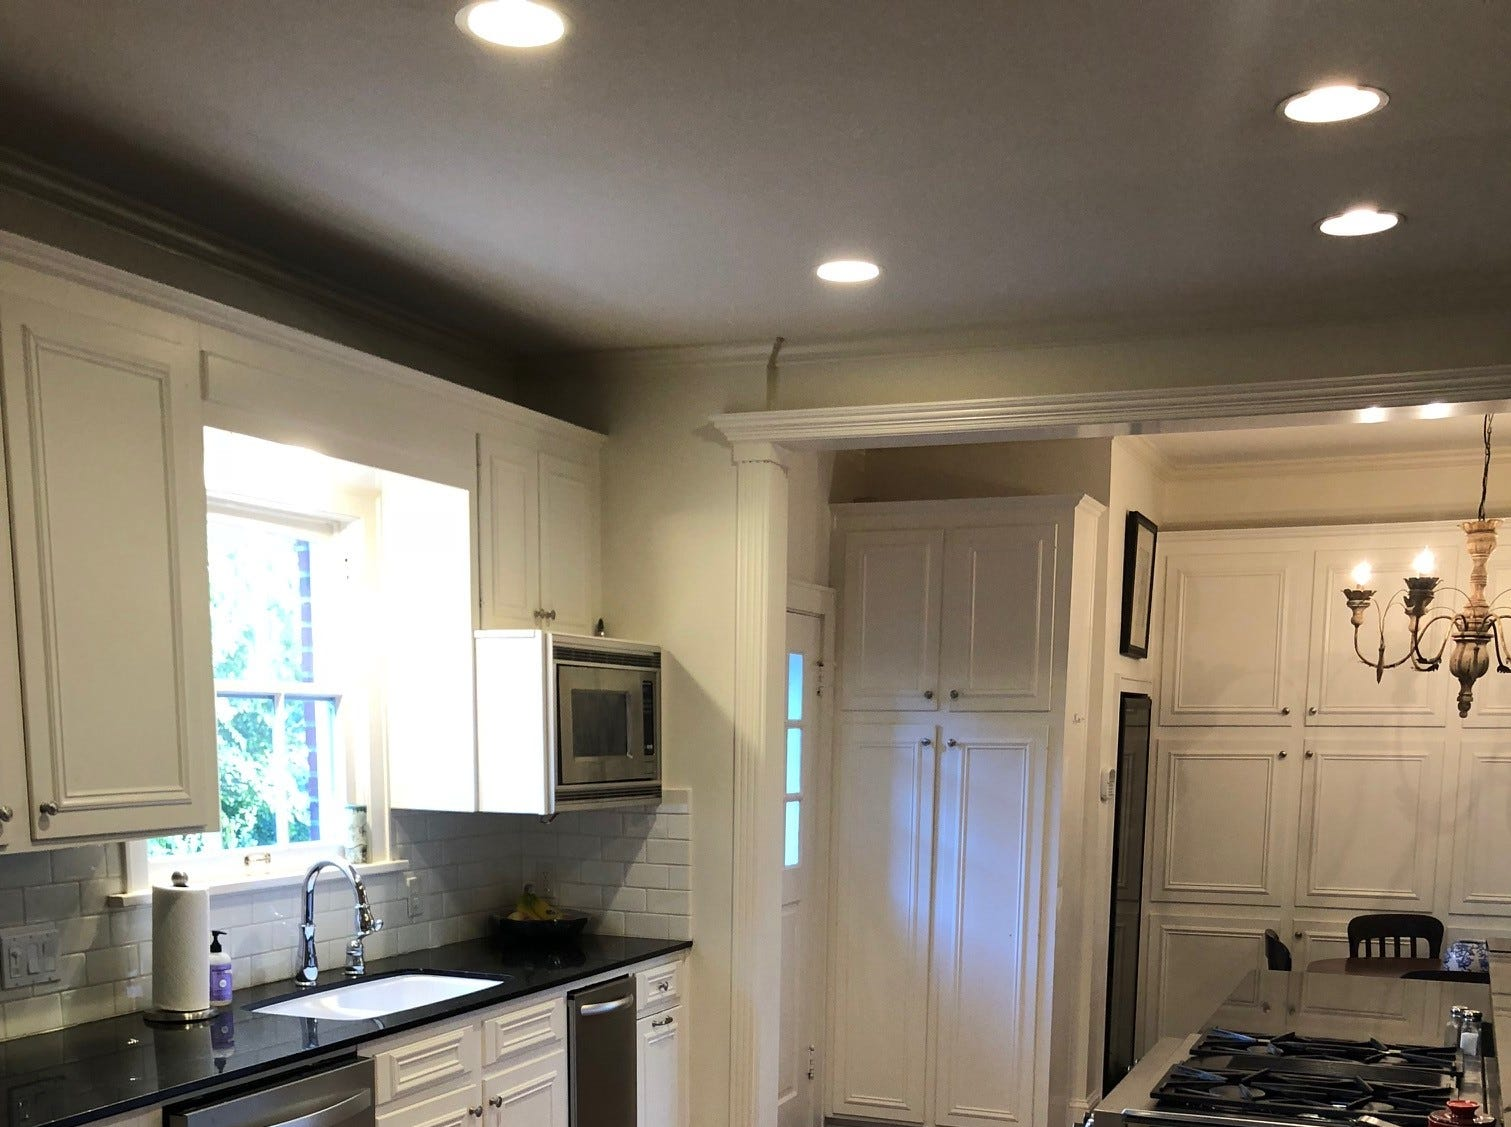 627 Oneonta St.,   Shreveport  Price: $455,000  Details: 5 bedrooms, 3 bathrooms, 3,318 square feet  Special features: Historic home in the heart of South Highlands,  cook's kitchen, Euro Cave wine cellar, fully fenced.   Contact: Michel Fritze, 453-6034